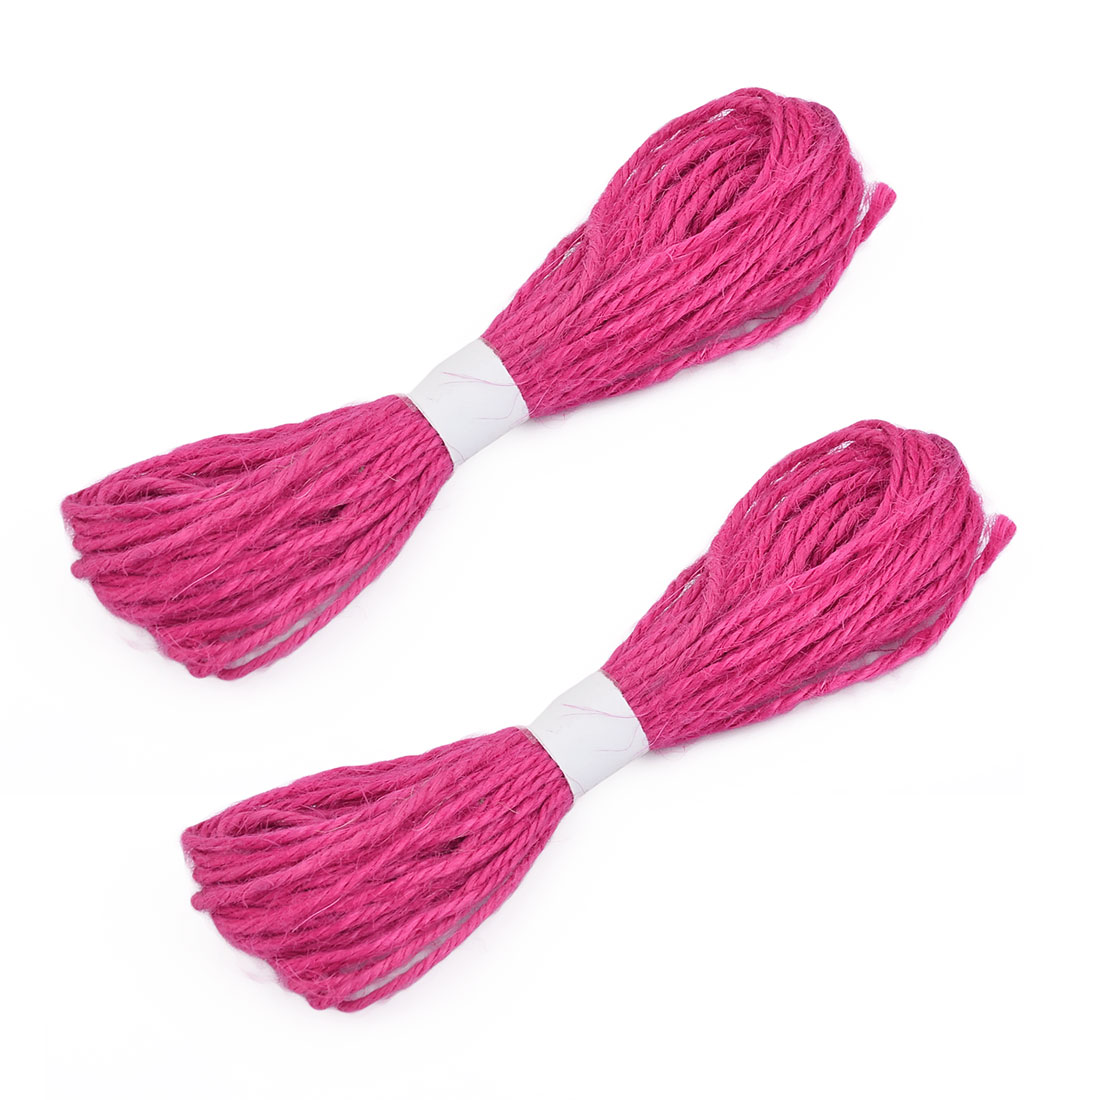 Birthday Festival Craft Gift Wrapping String Yarn Fuchsia 2mm Dia 11 Yards 2pcs